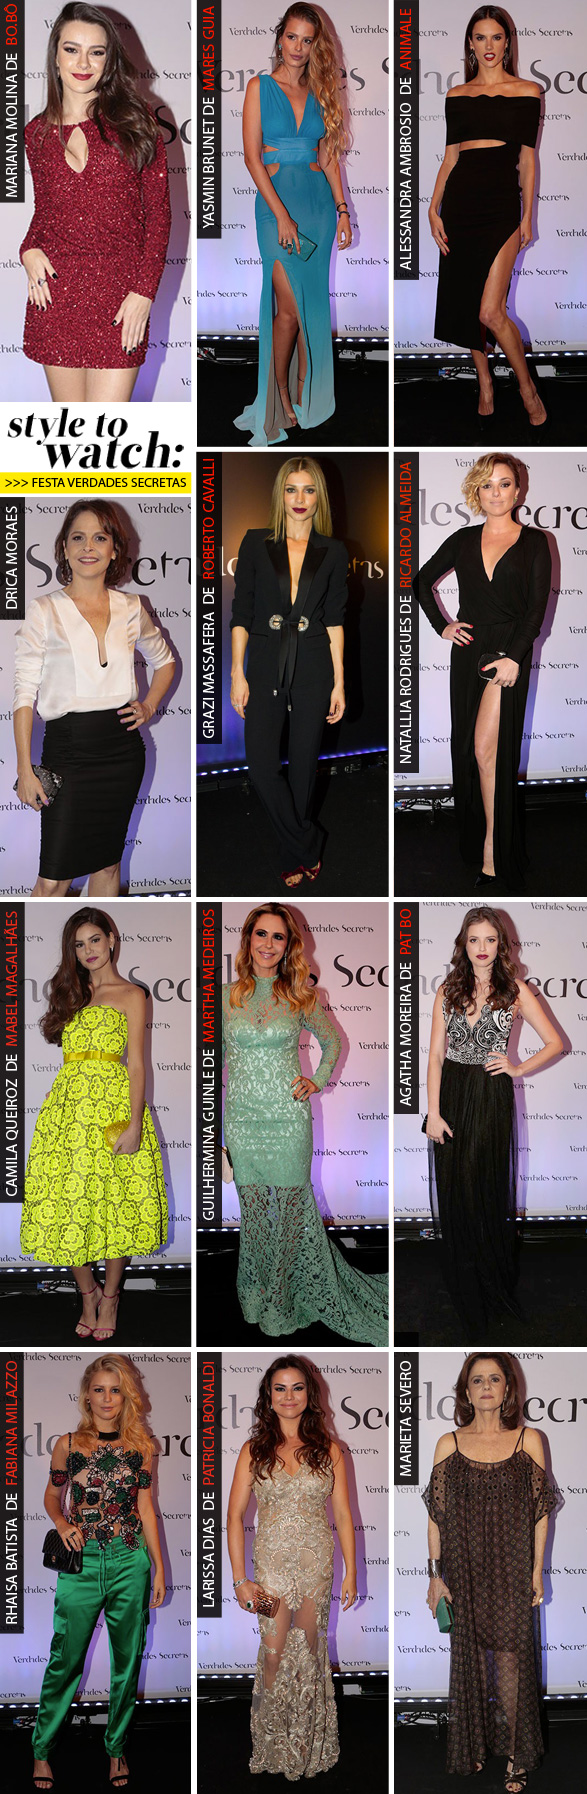 EVENTO--LOOKS-VERDADES-SECRETAS